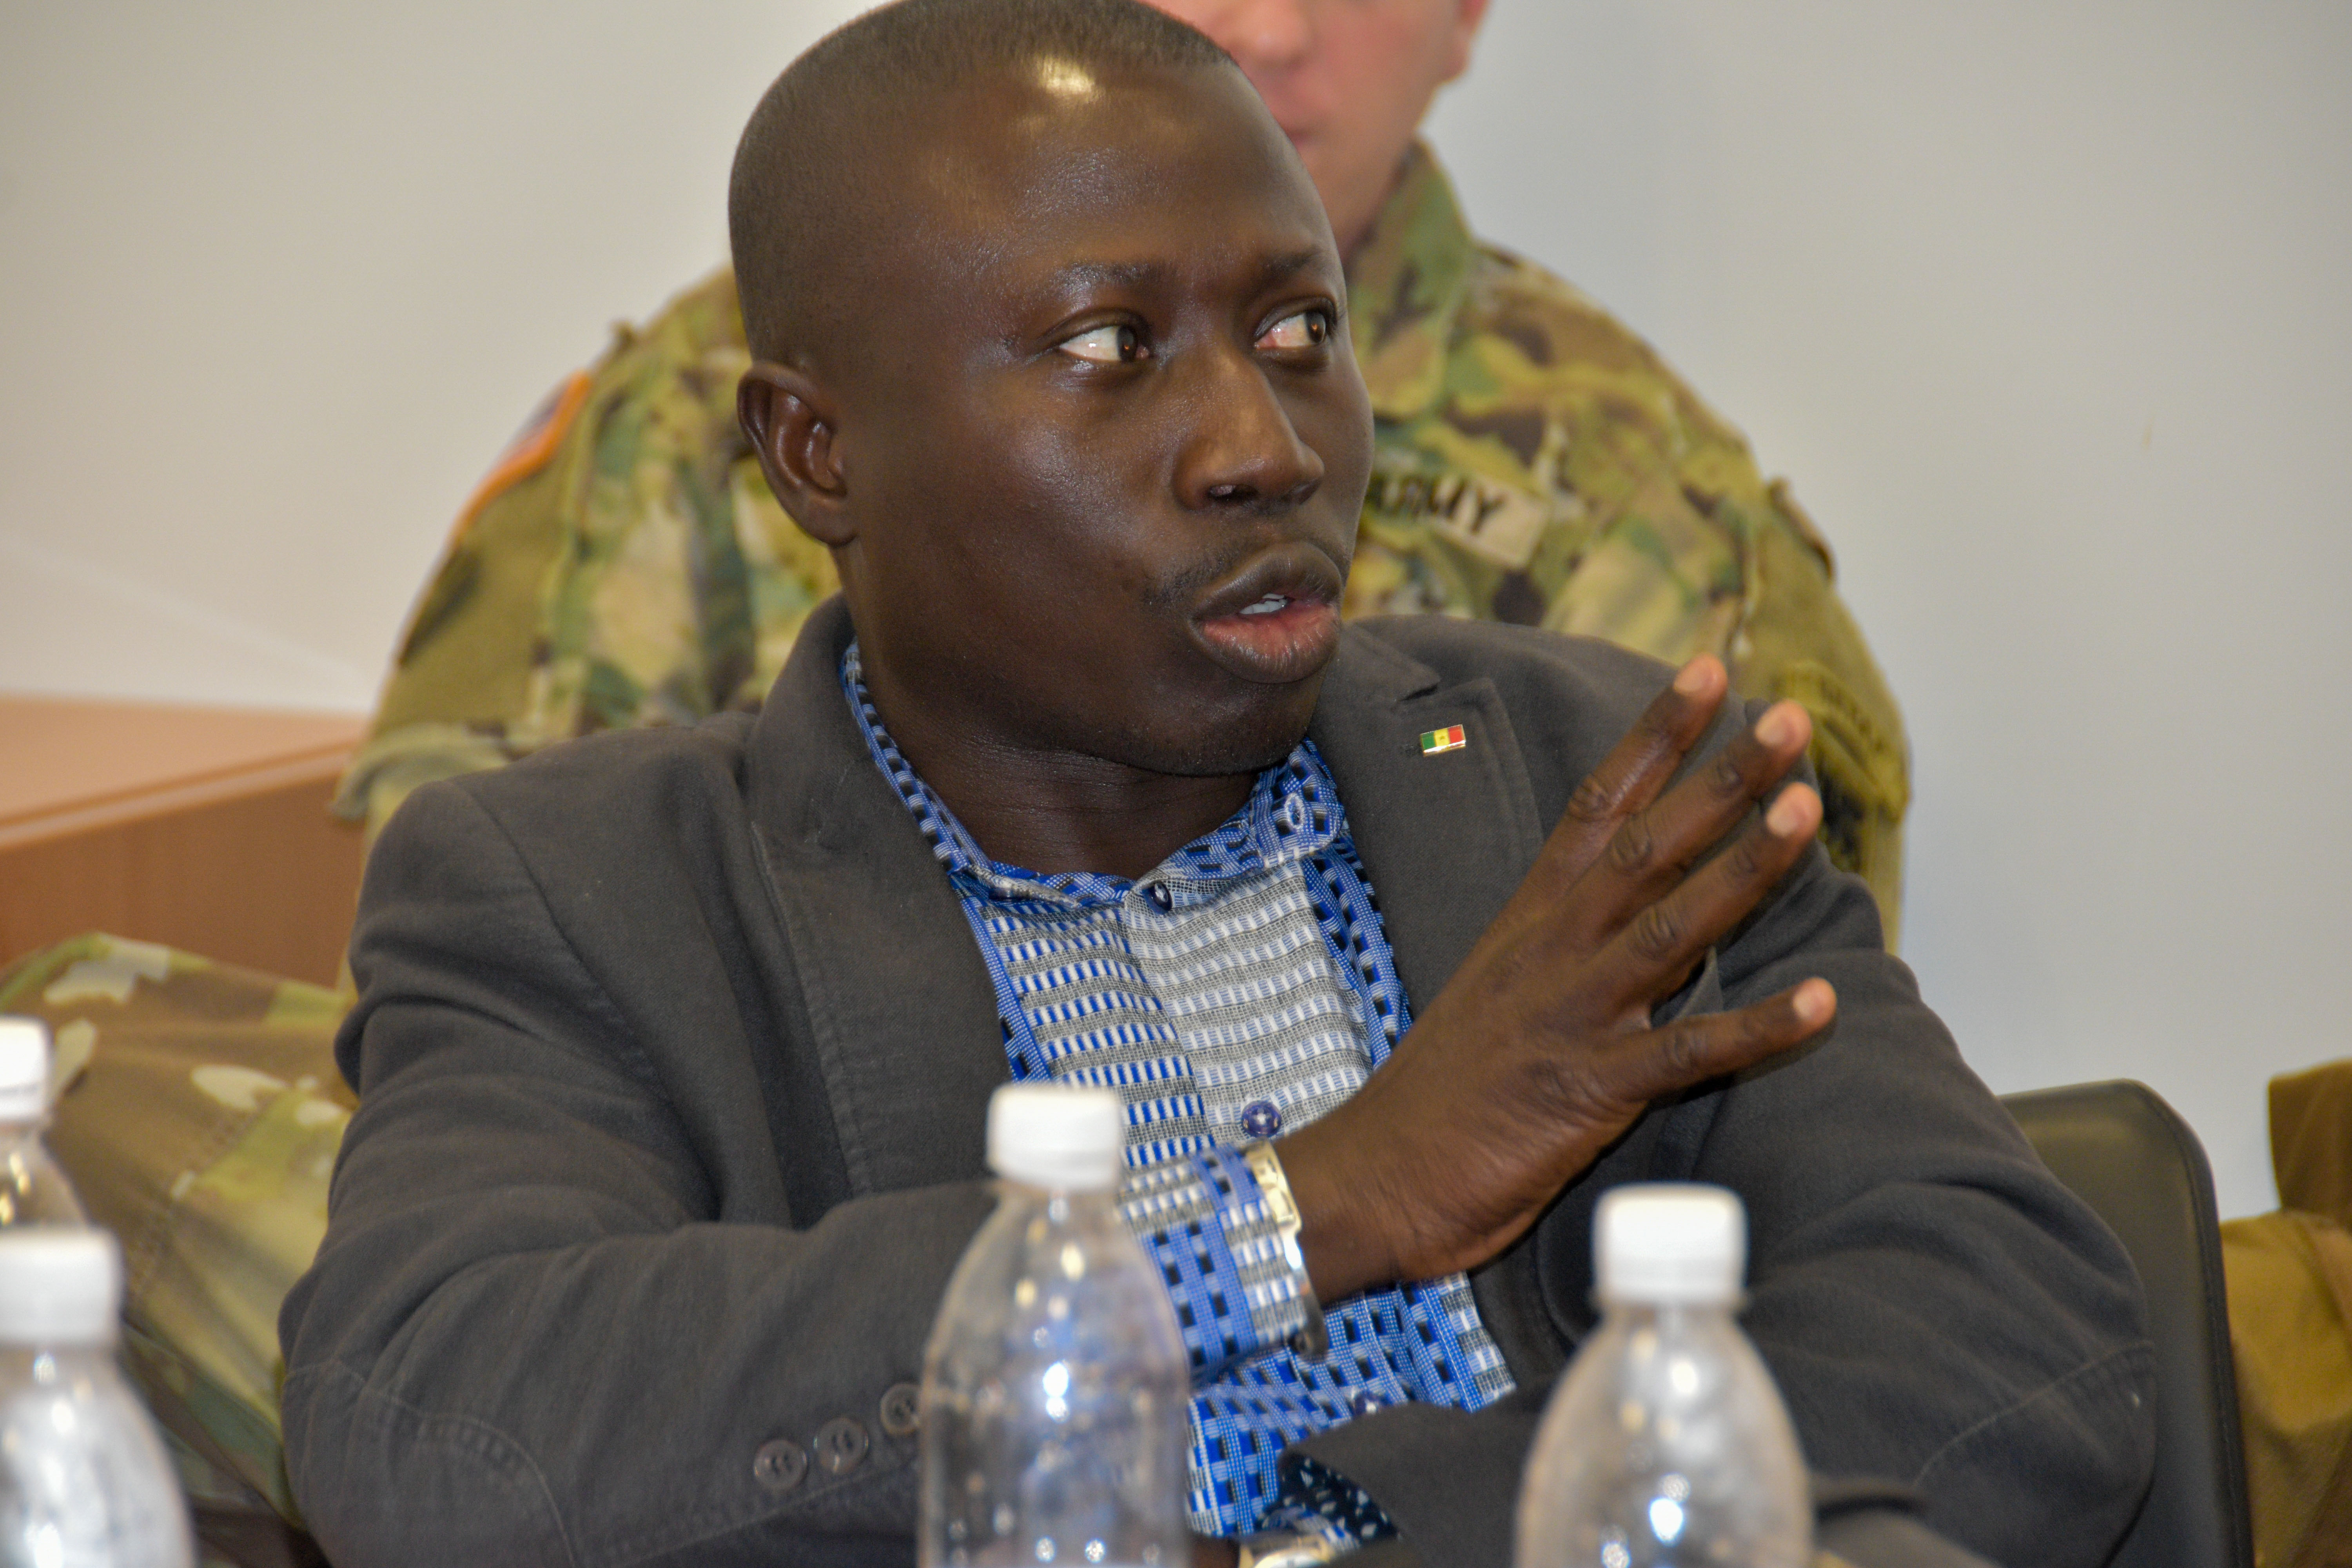 Louis Philippe Sagna, a journalist with Senegal's national television RTS/TV, asks a question.  Journalists from various news organizations in Senegal and Guinea Bissau visited U.S. Africa Command, Stuttgart, Germany, Dec. 11-14, 2017. AFRICOM staff provided briefs throughout the week which culminated in an interview of Lt. Gen. James C. Vechery, Deputy to the Commander for Military Operations, U.S. Africa Command.